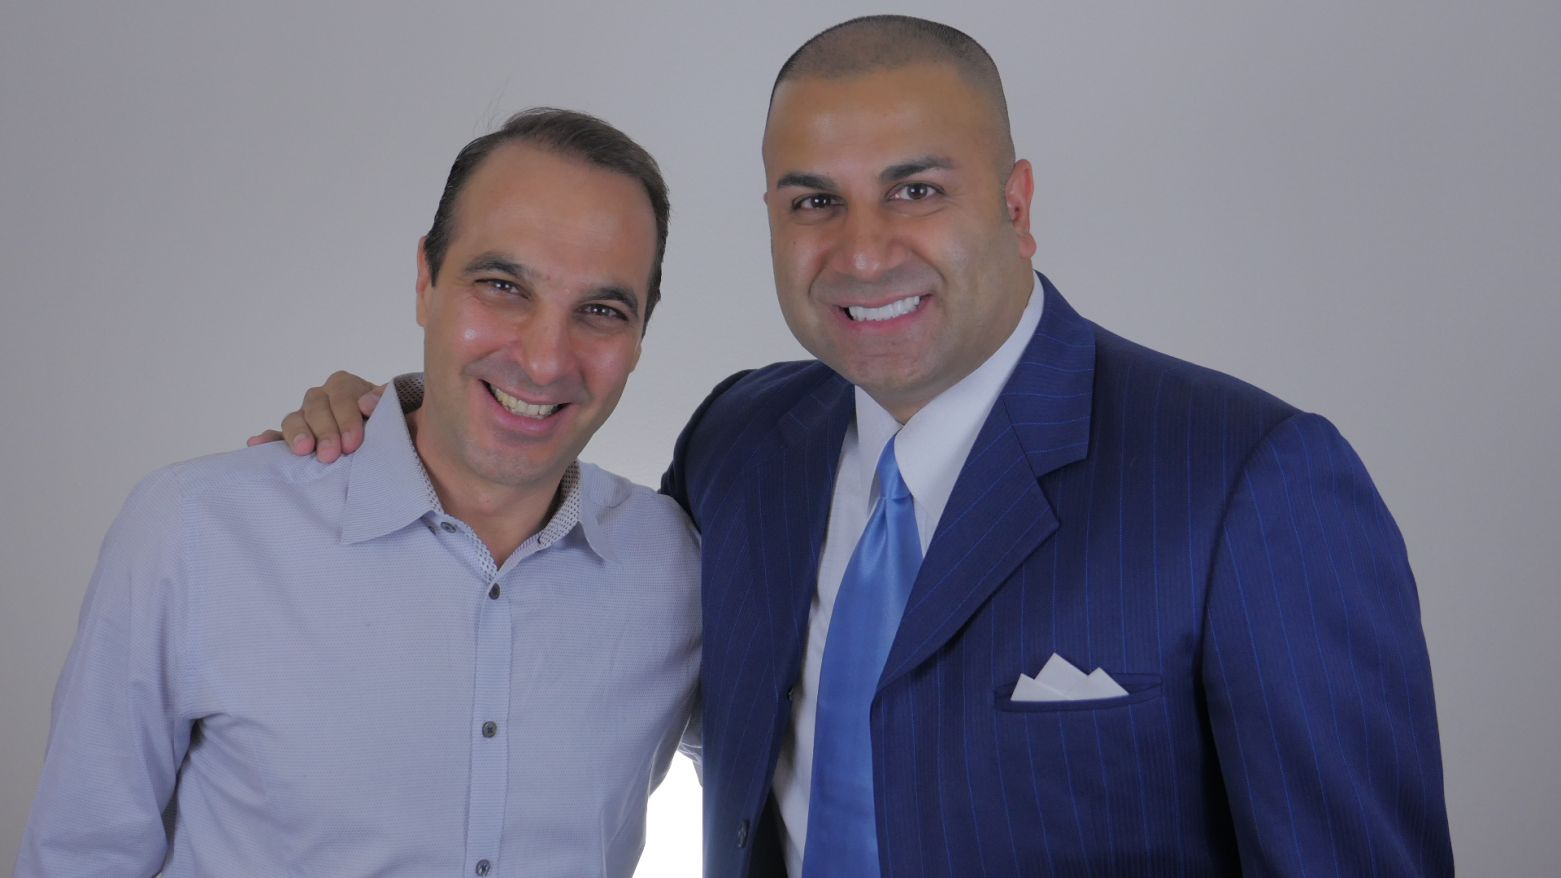 SEACRET Direct CEO Izhak Ben Shabat and Muzafer Najfi